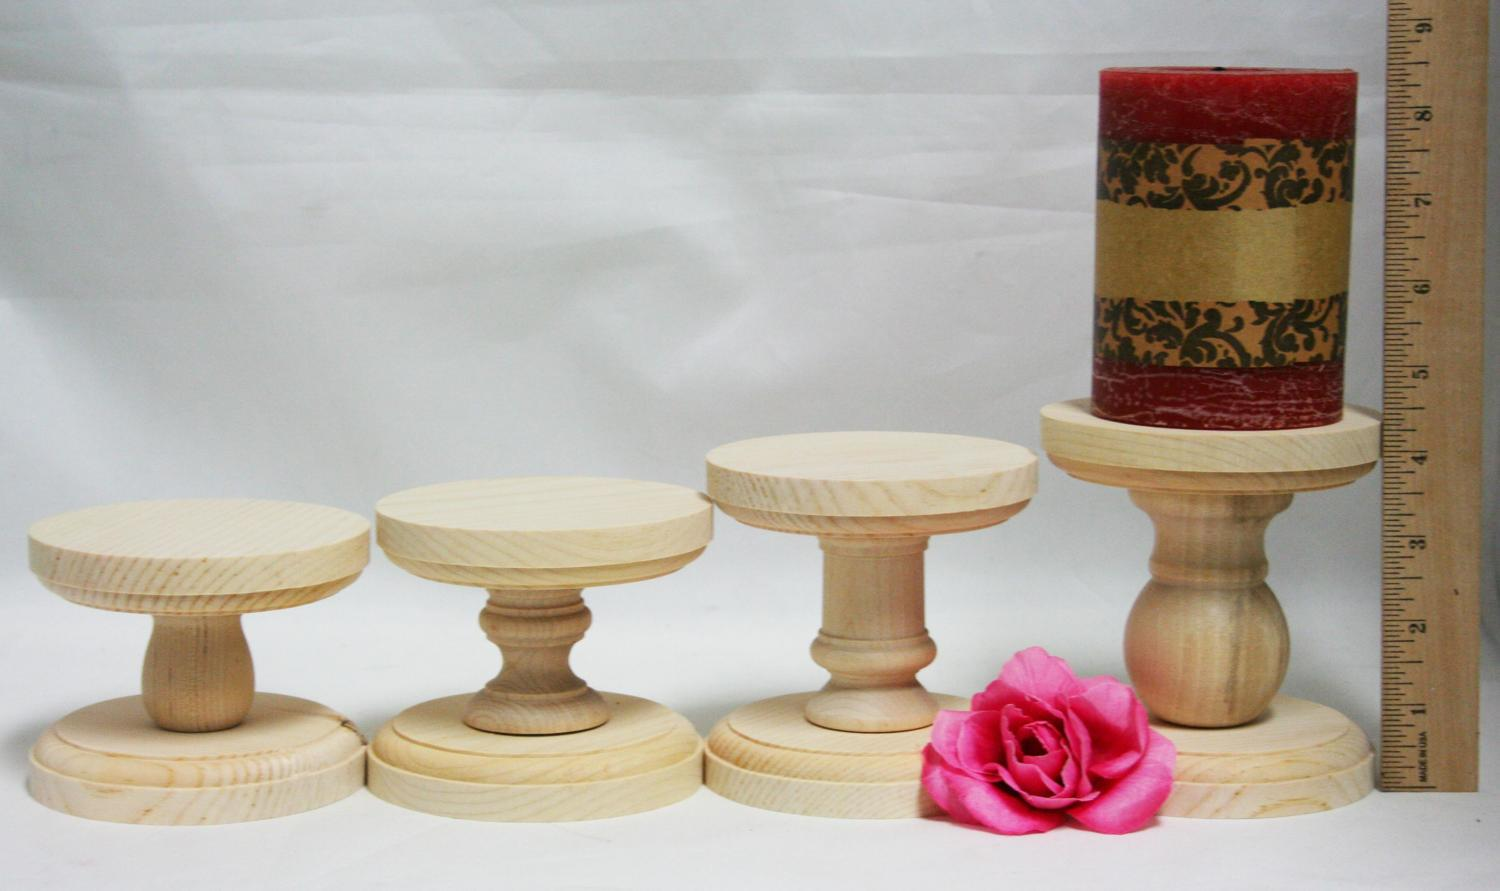 Smaller Unfinished Wood Pillar Candlestick Holders